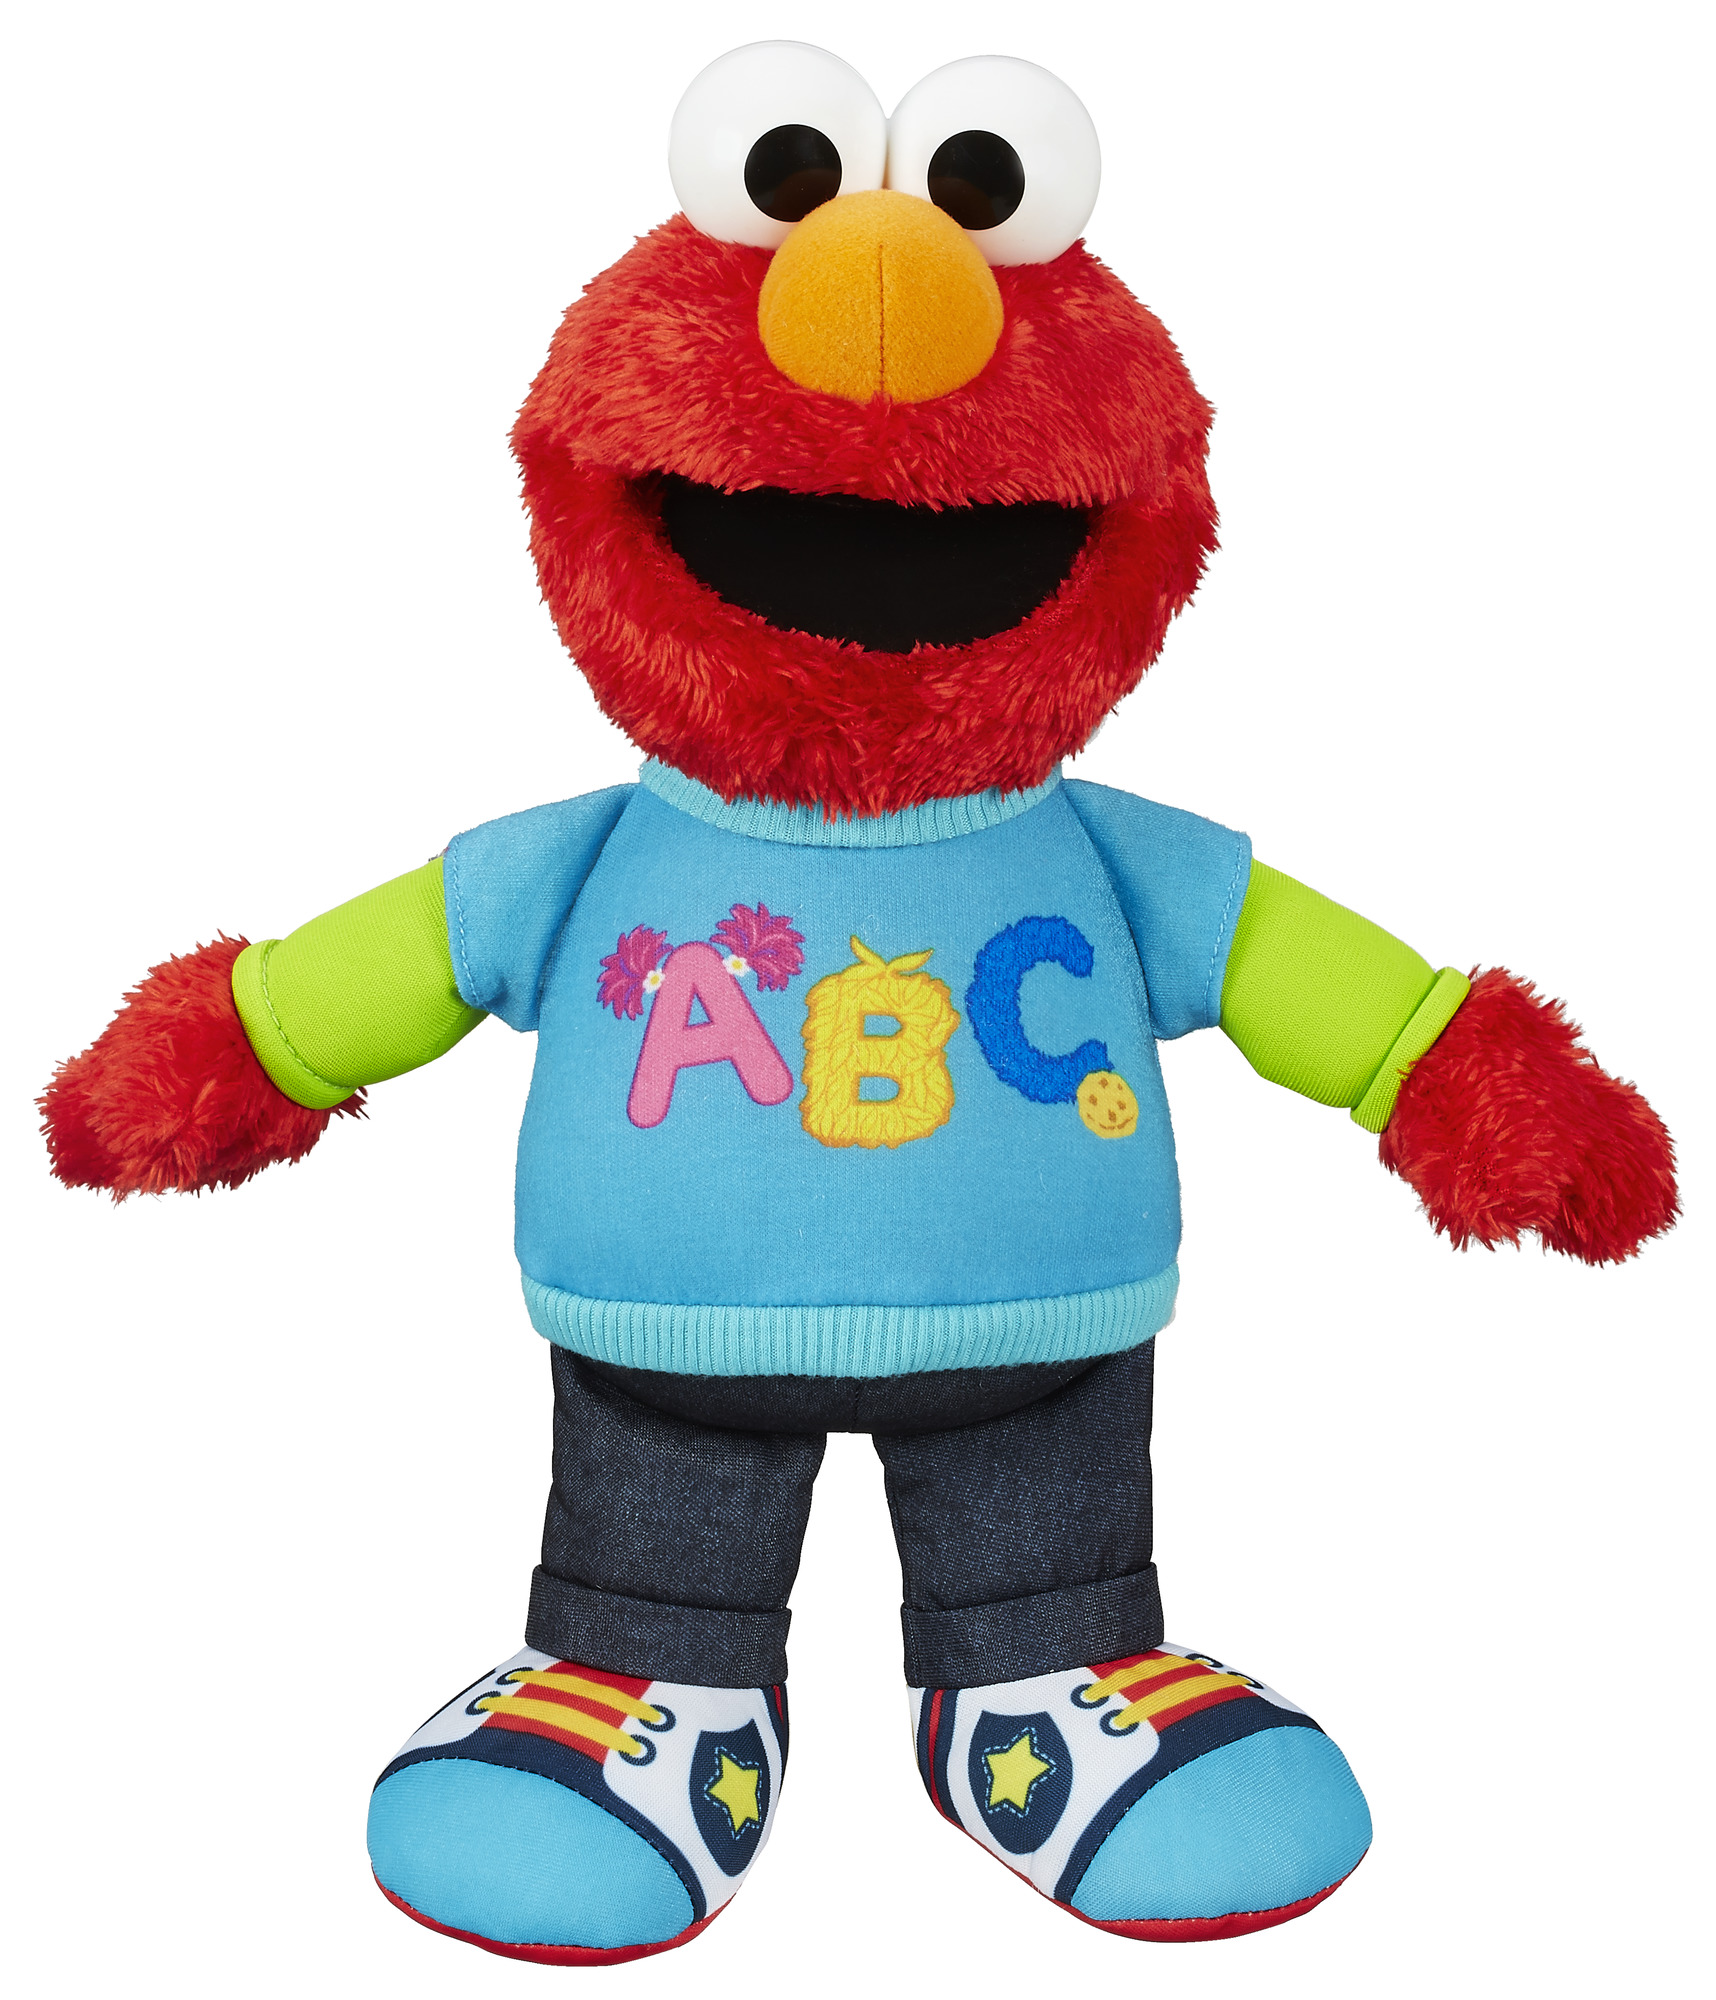 Playskool Friends Sesame Street Talking ABC Elmo by Sesame Street